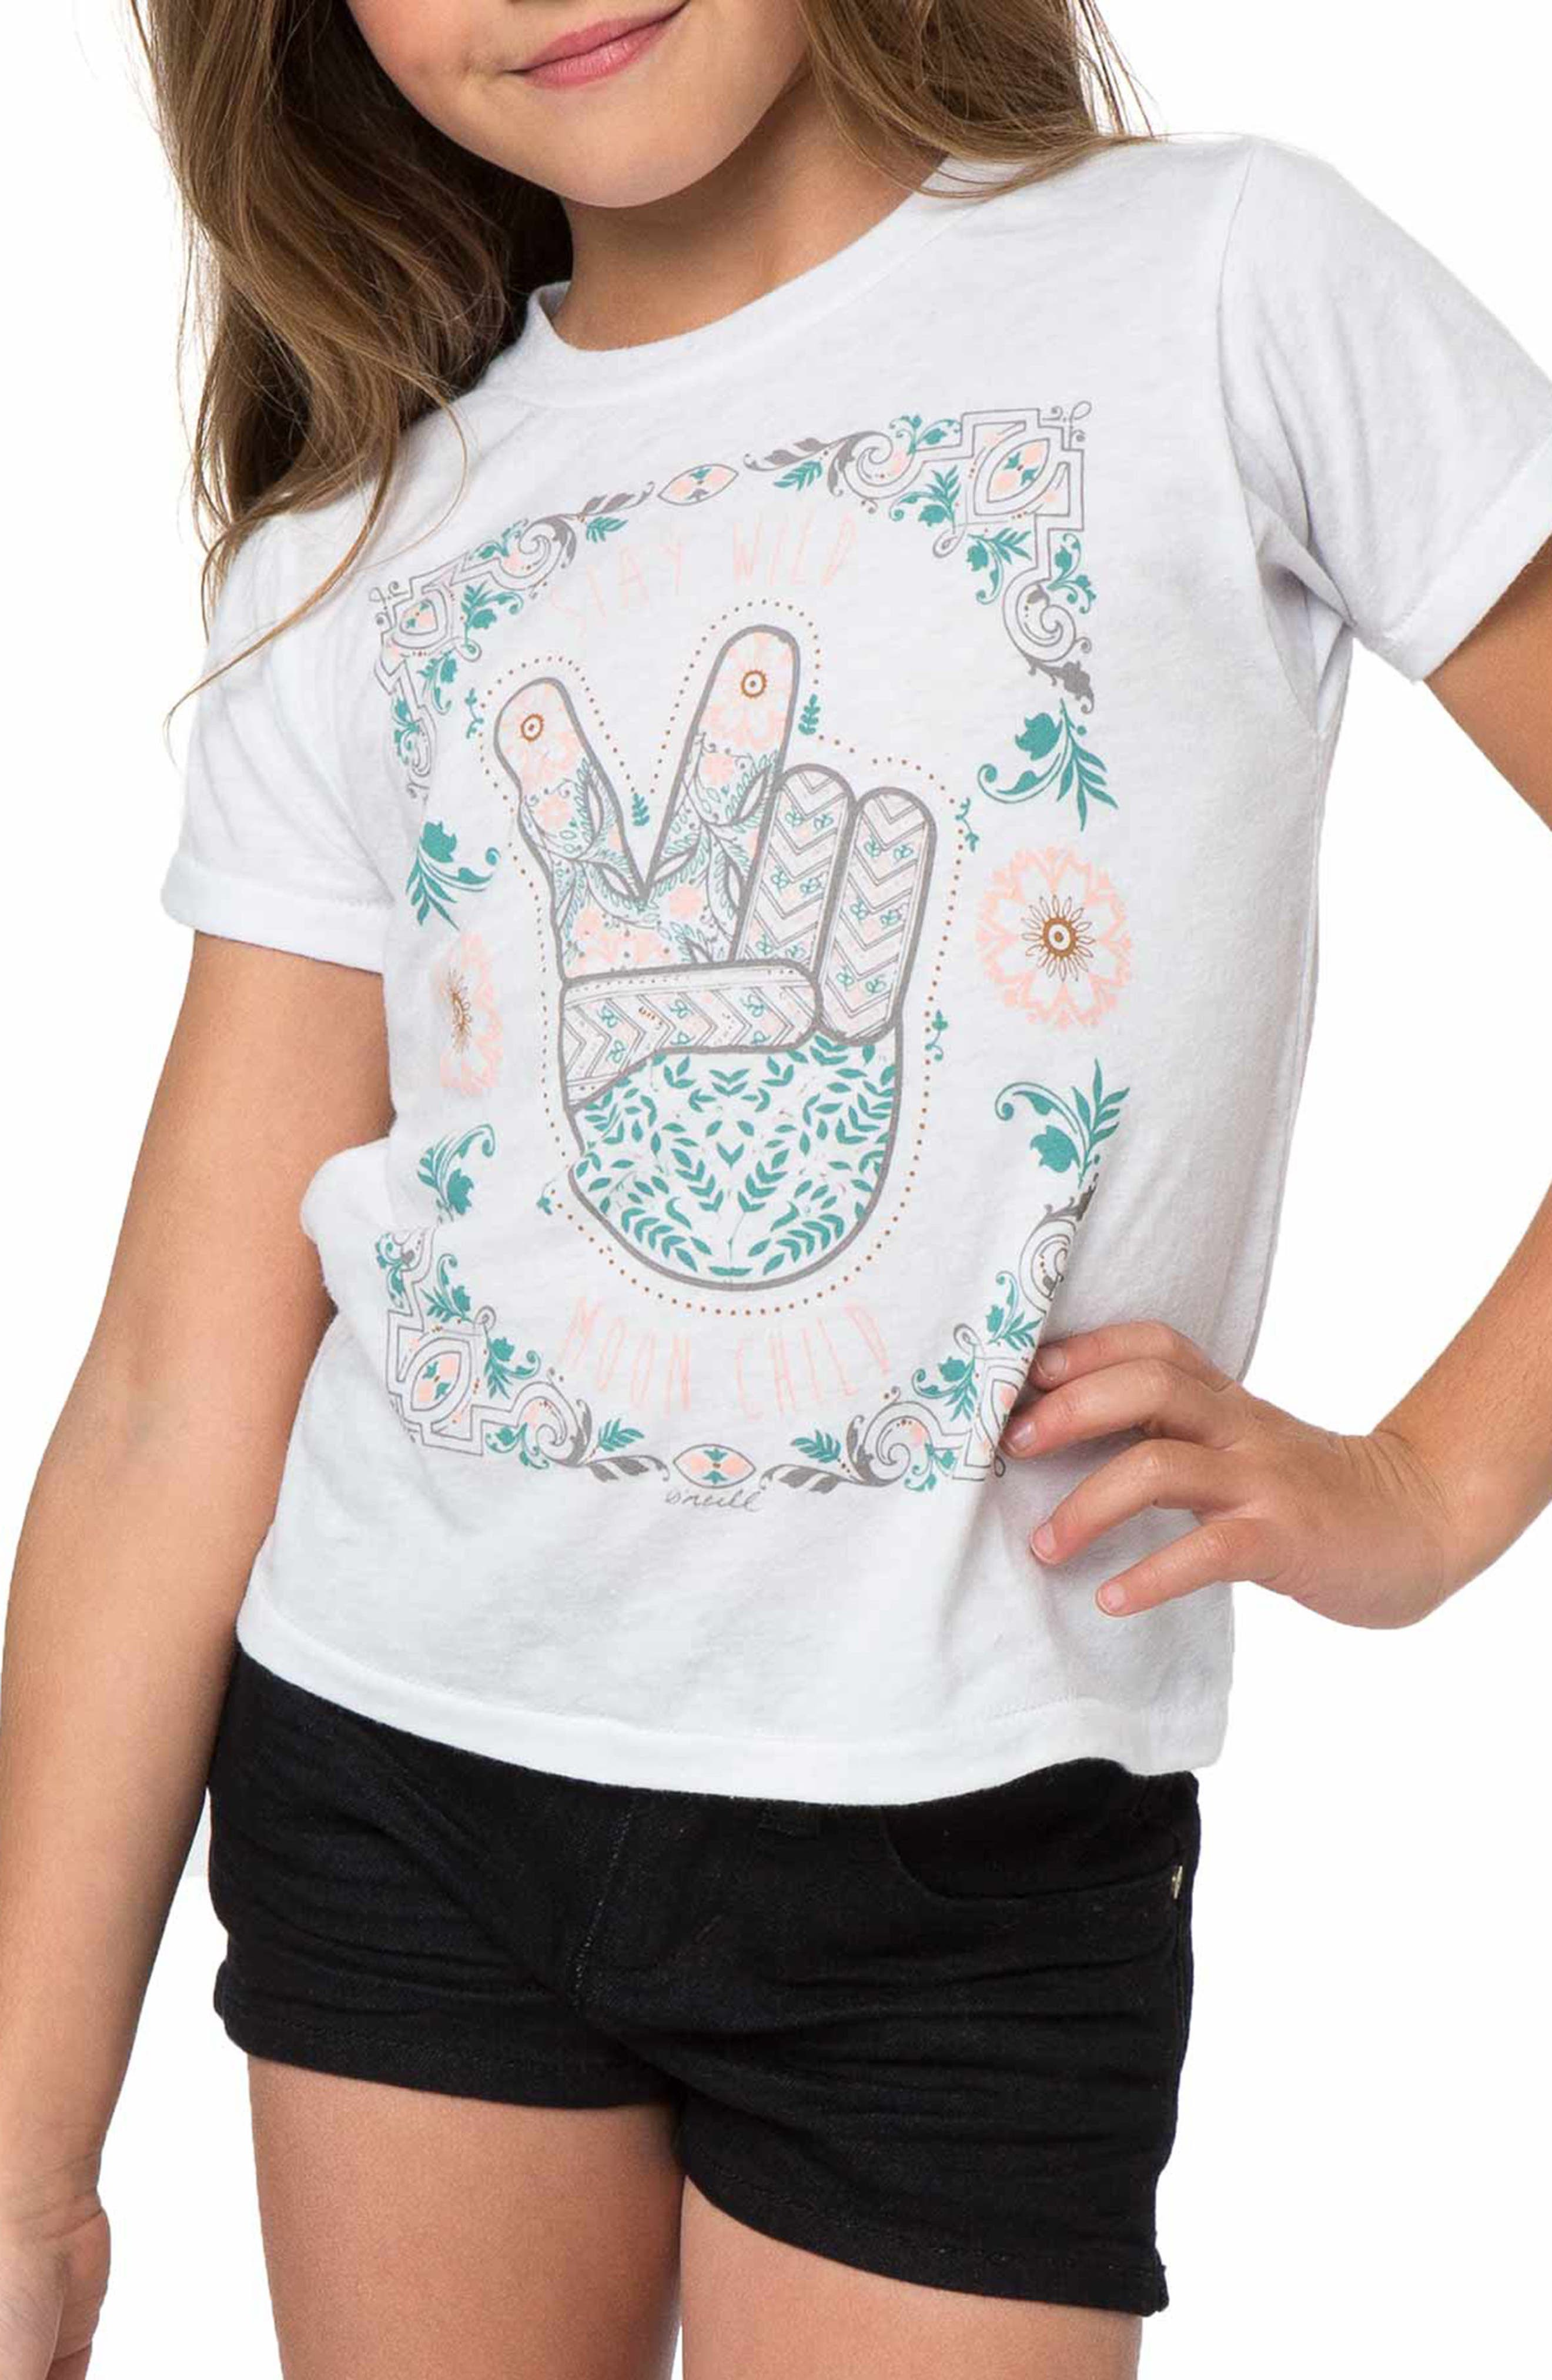 Stay Wild Moon Child Graphic Print Tee,                             Main thumbnail 1, color,                             100